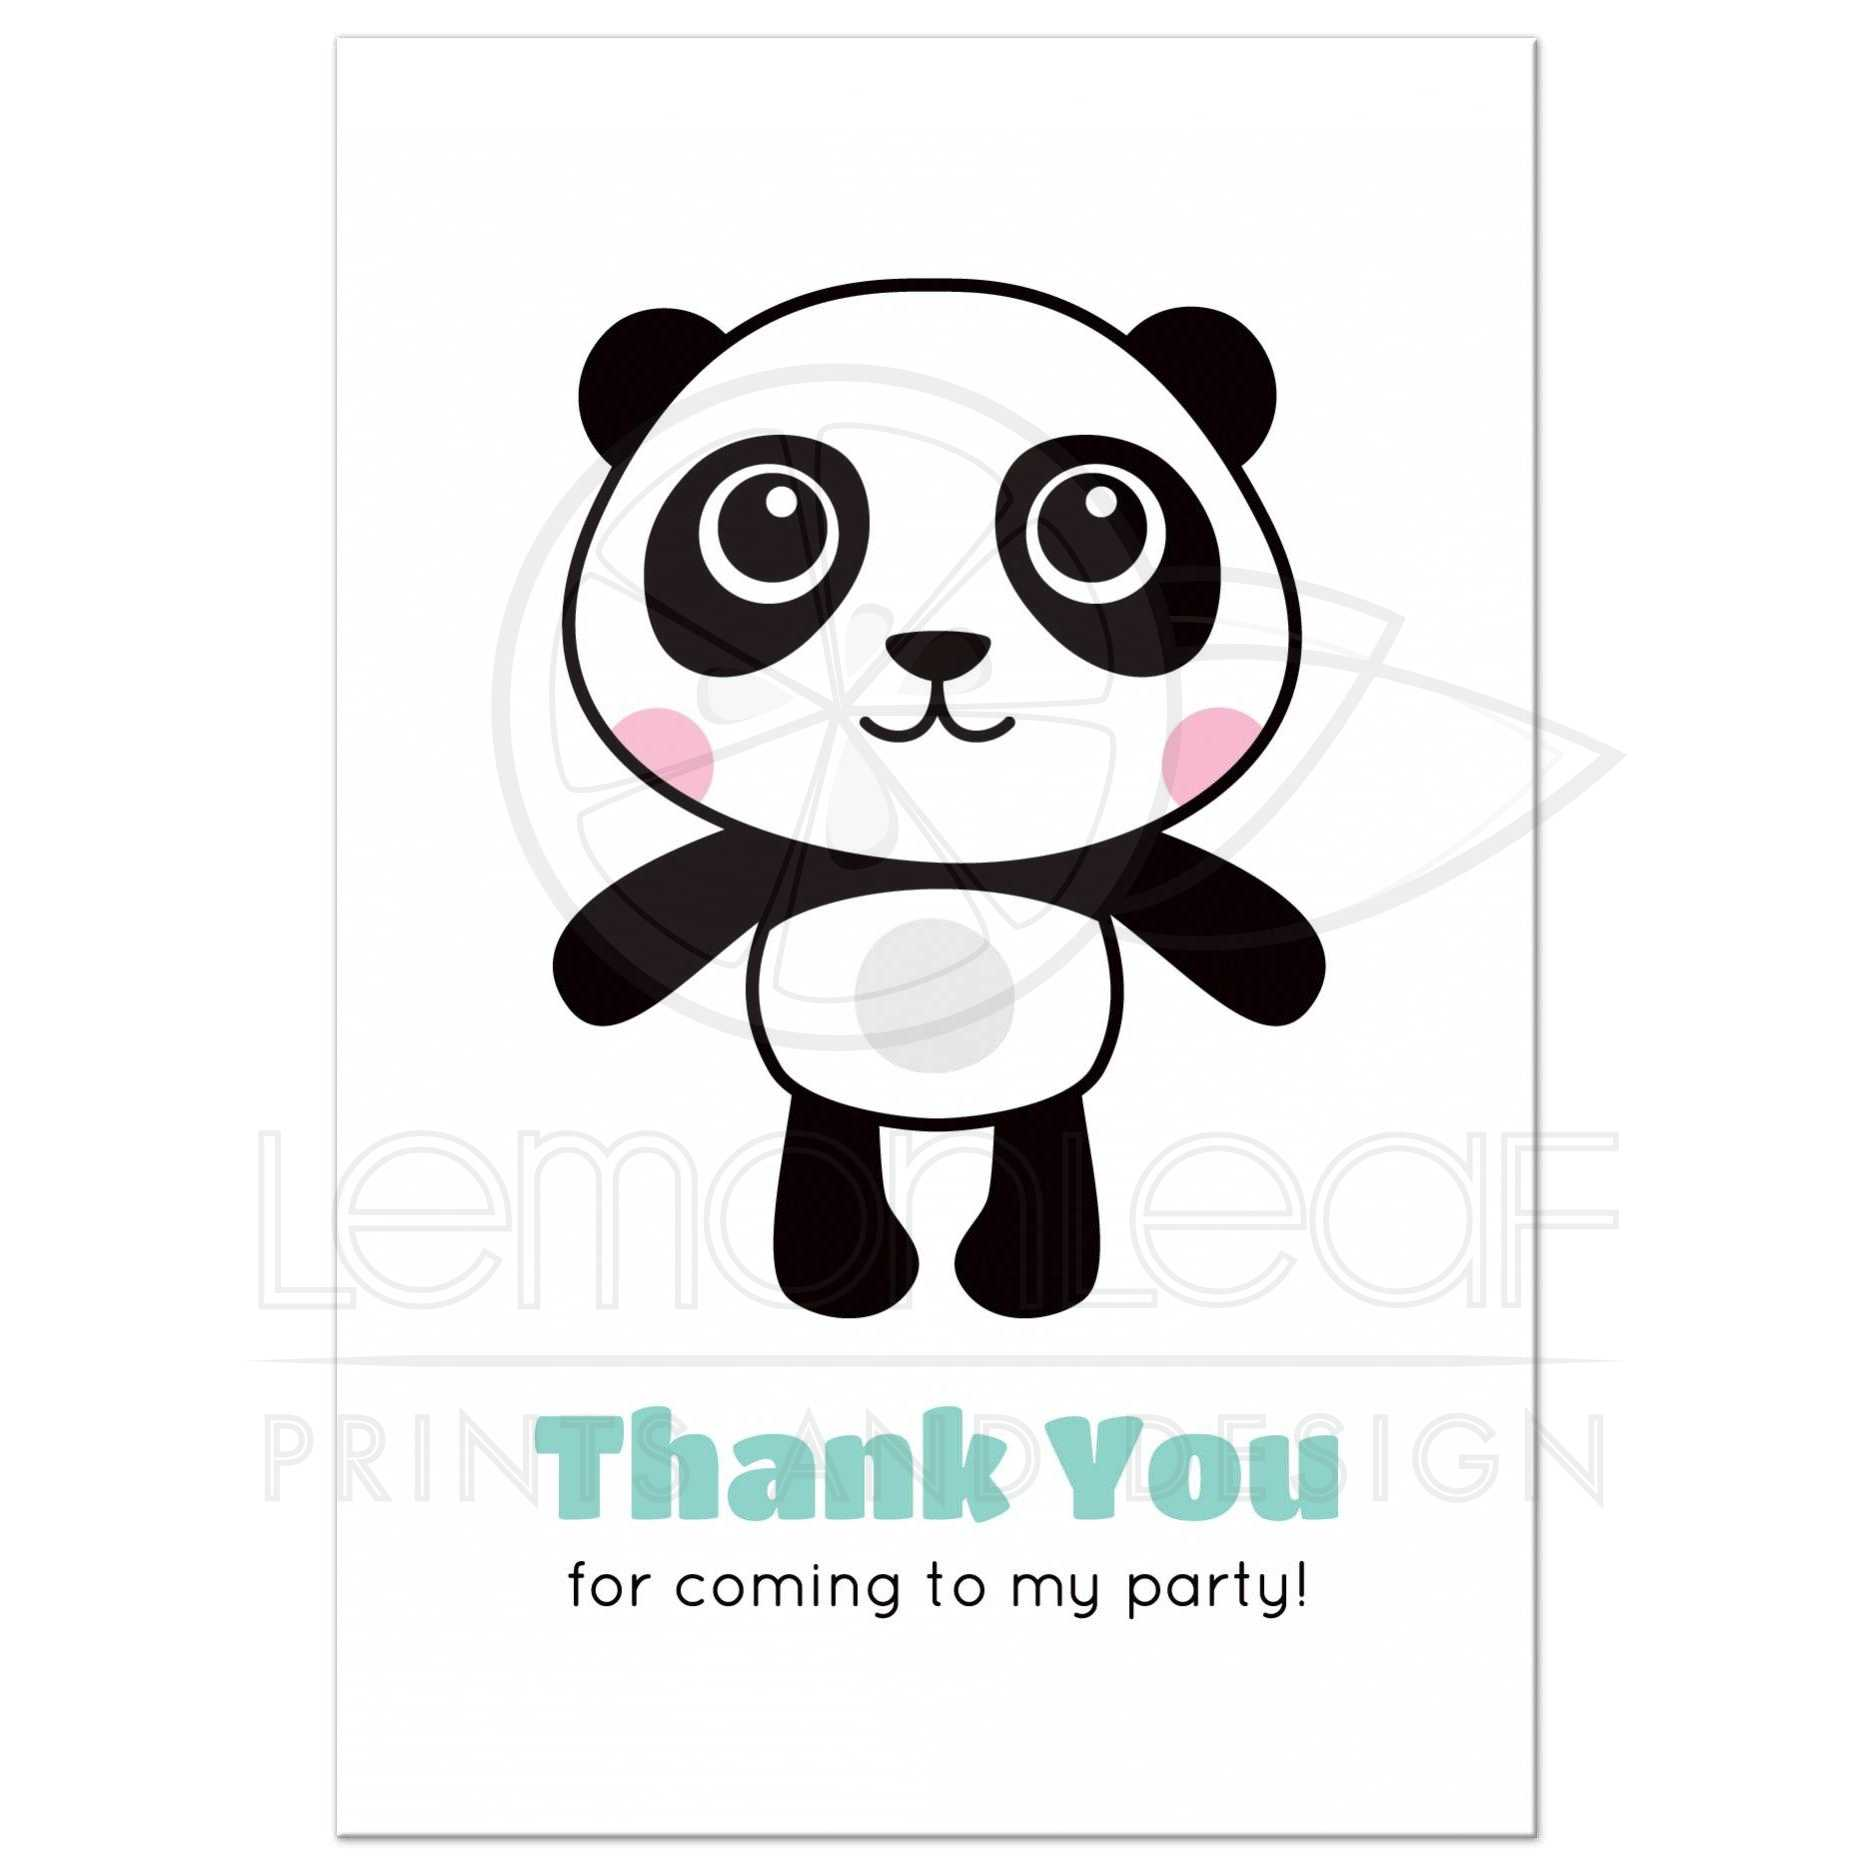 Cute panda thank you for coming to my birthday party postcard